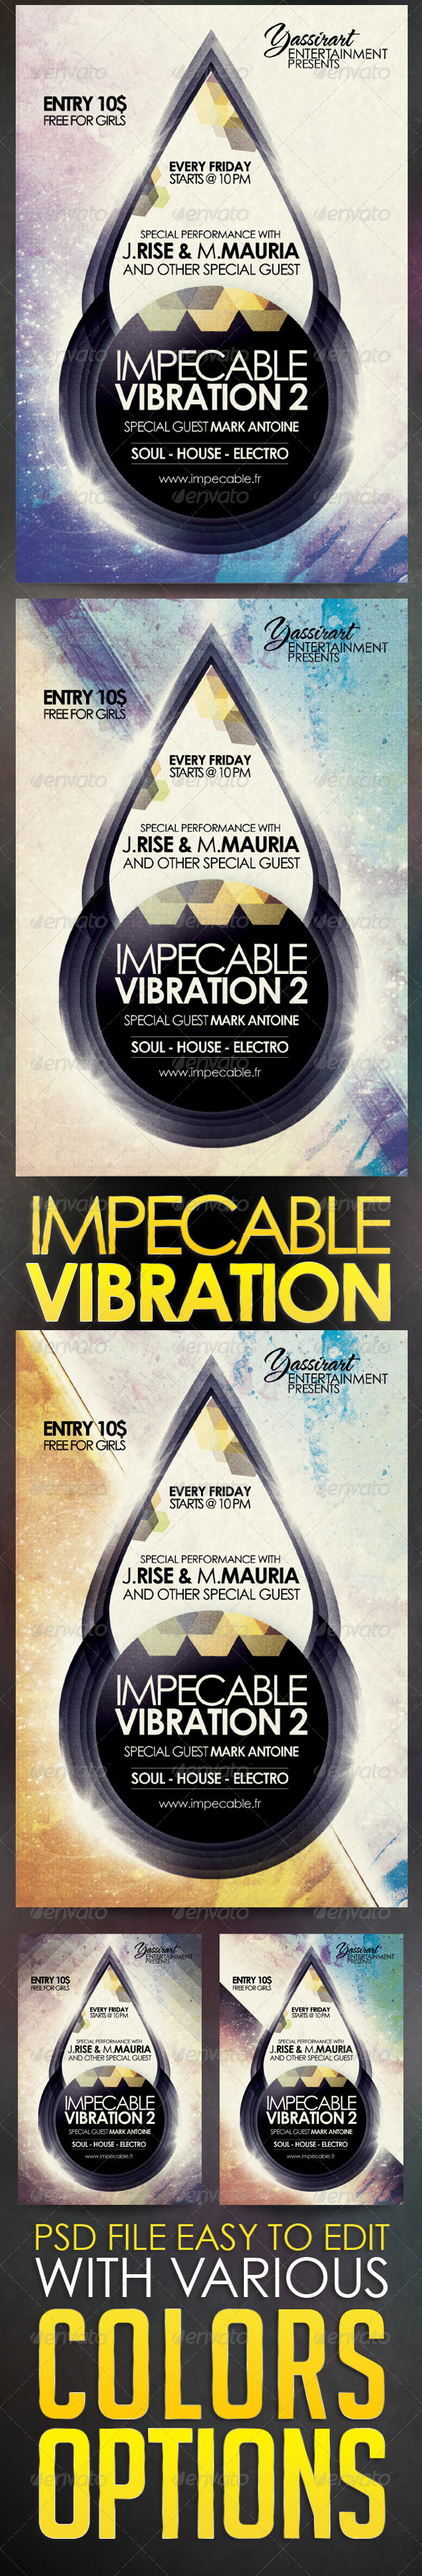 GraphicRiver Impecable Vibration 2 Flyer Template 5620755